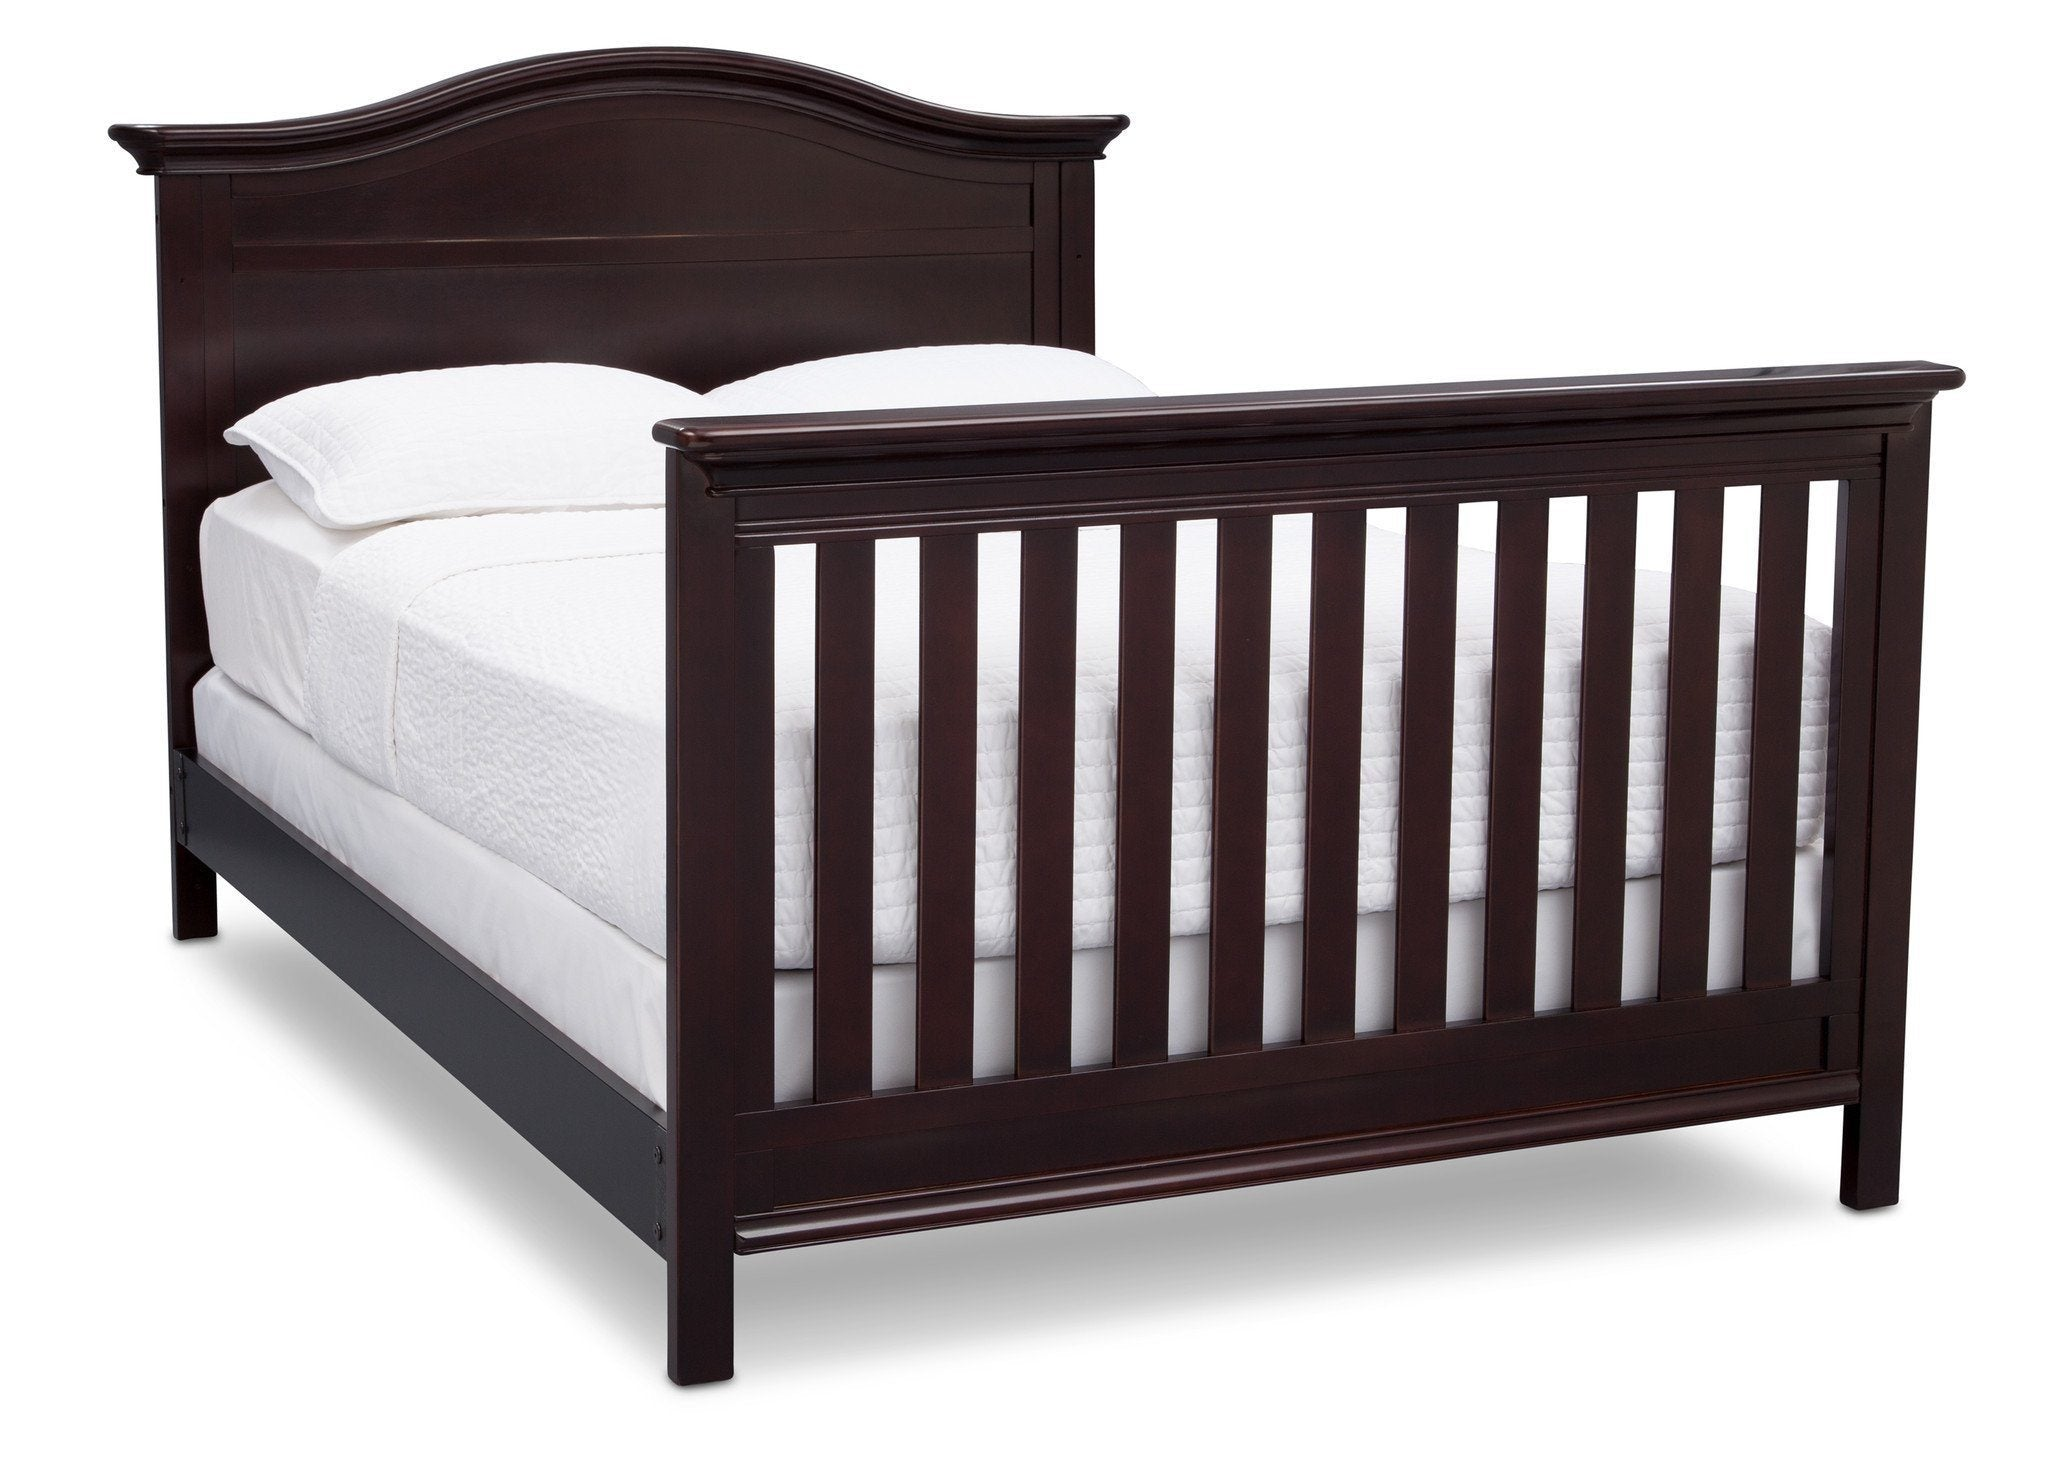 Serta Dark Chocolate (207) Bethpage 4-in-1 Crib, Side View with Full Size Bed c7c